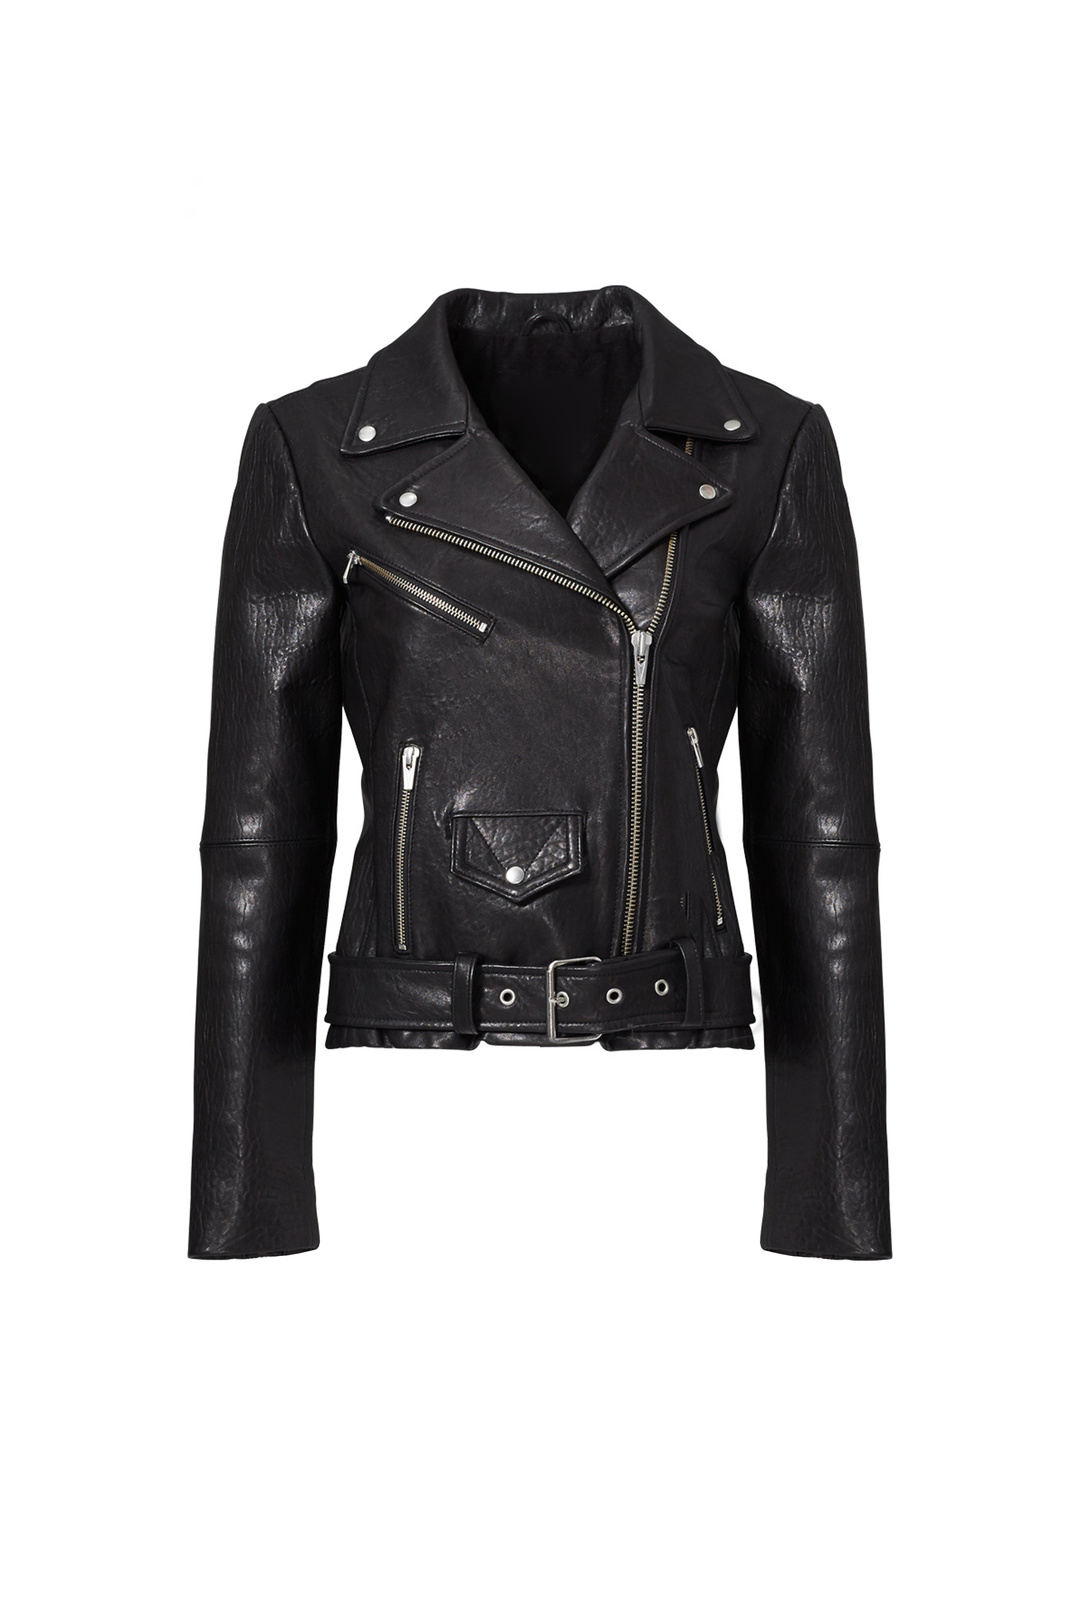 Click here to rent this Veda jacket for yourself!